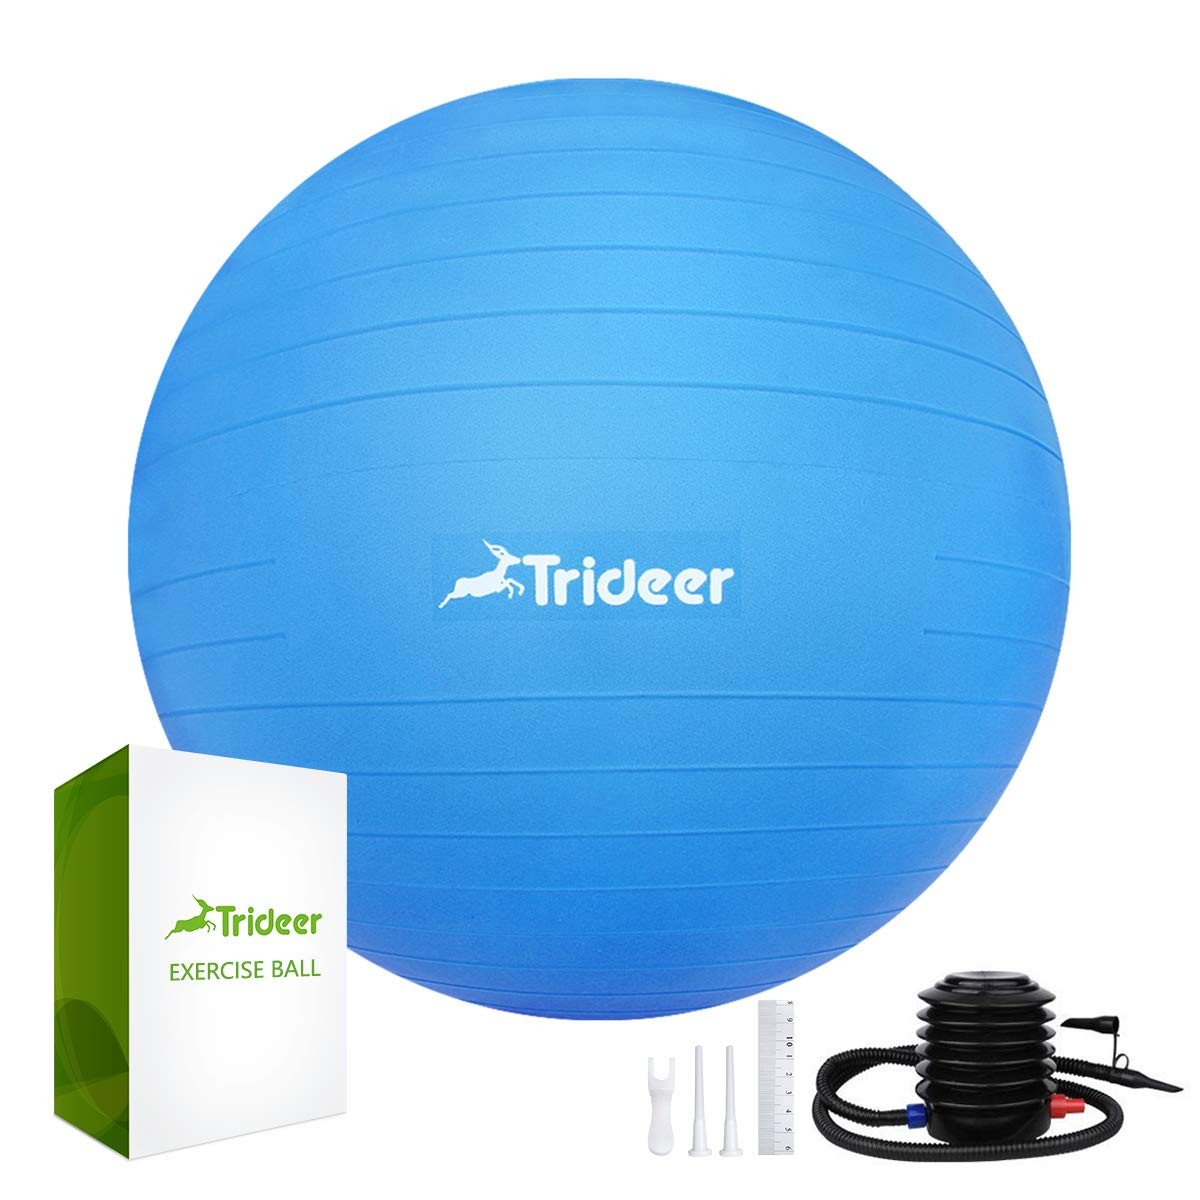 Trideer Exercise Ball (45-85cm) Extra Thick Yoga Ball Chair, Anti-Burst Heavy Duty Stability Ball Supports 2200lbs, Birthing Ball with Quick Pump (Office & Home & Gym) by Trideer